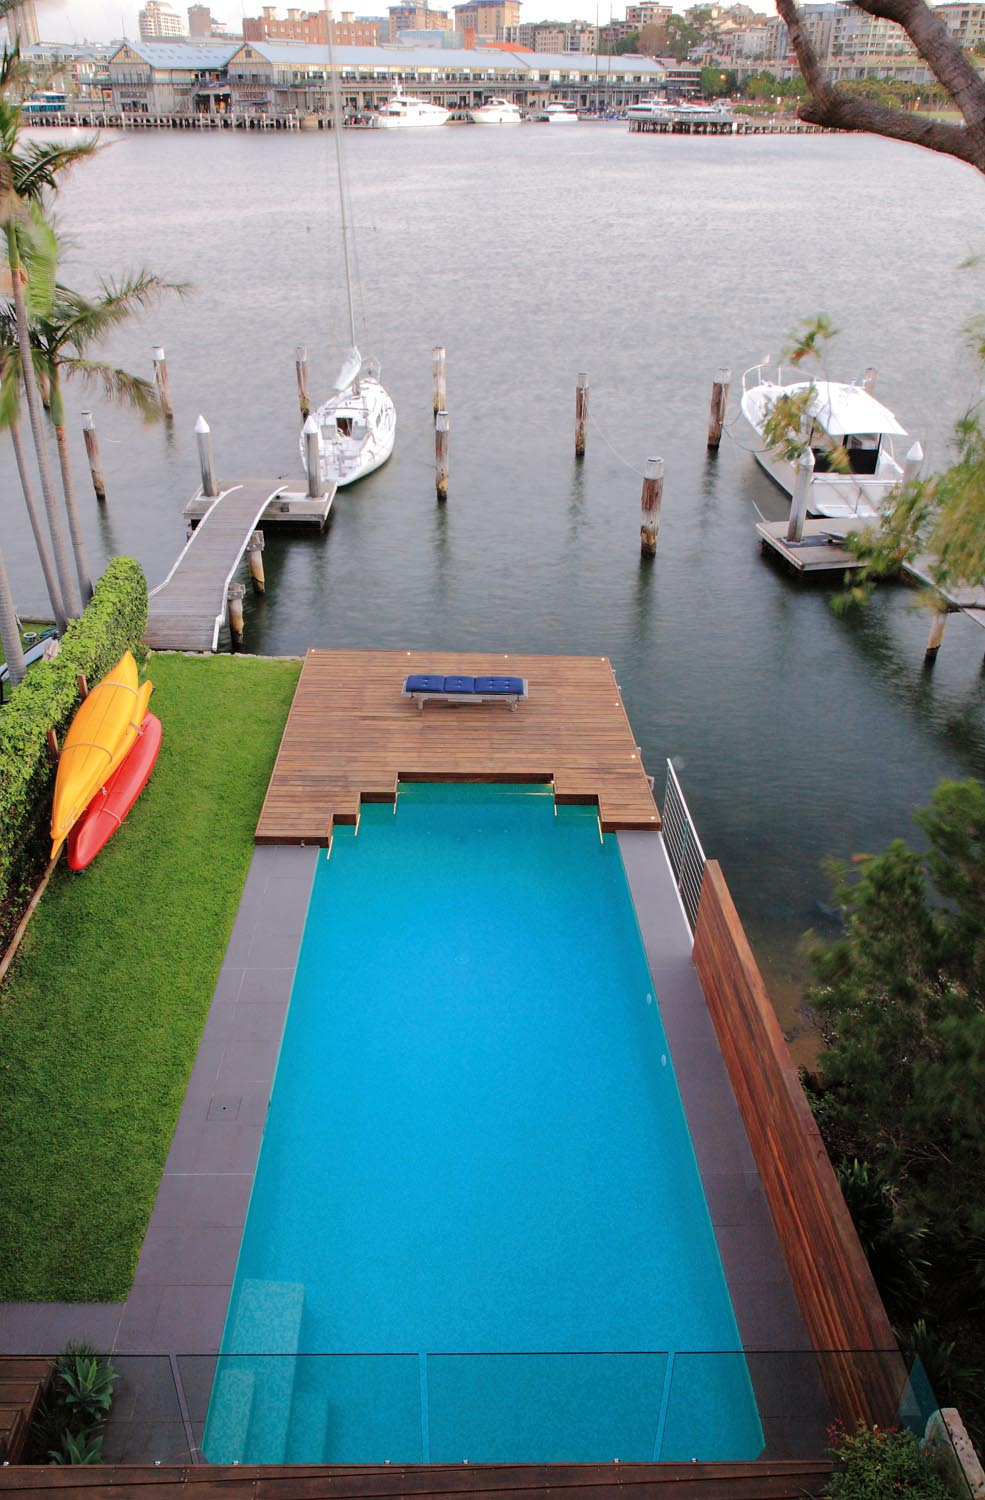 A simple pool next to a wharf and a boat